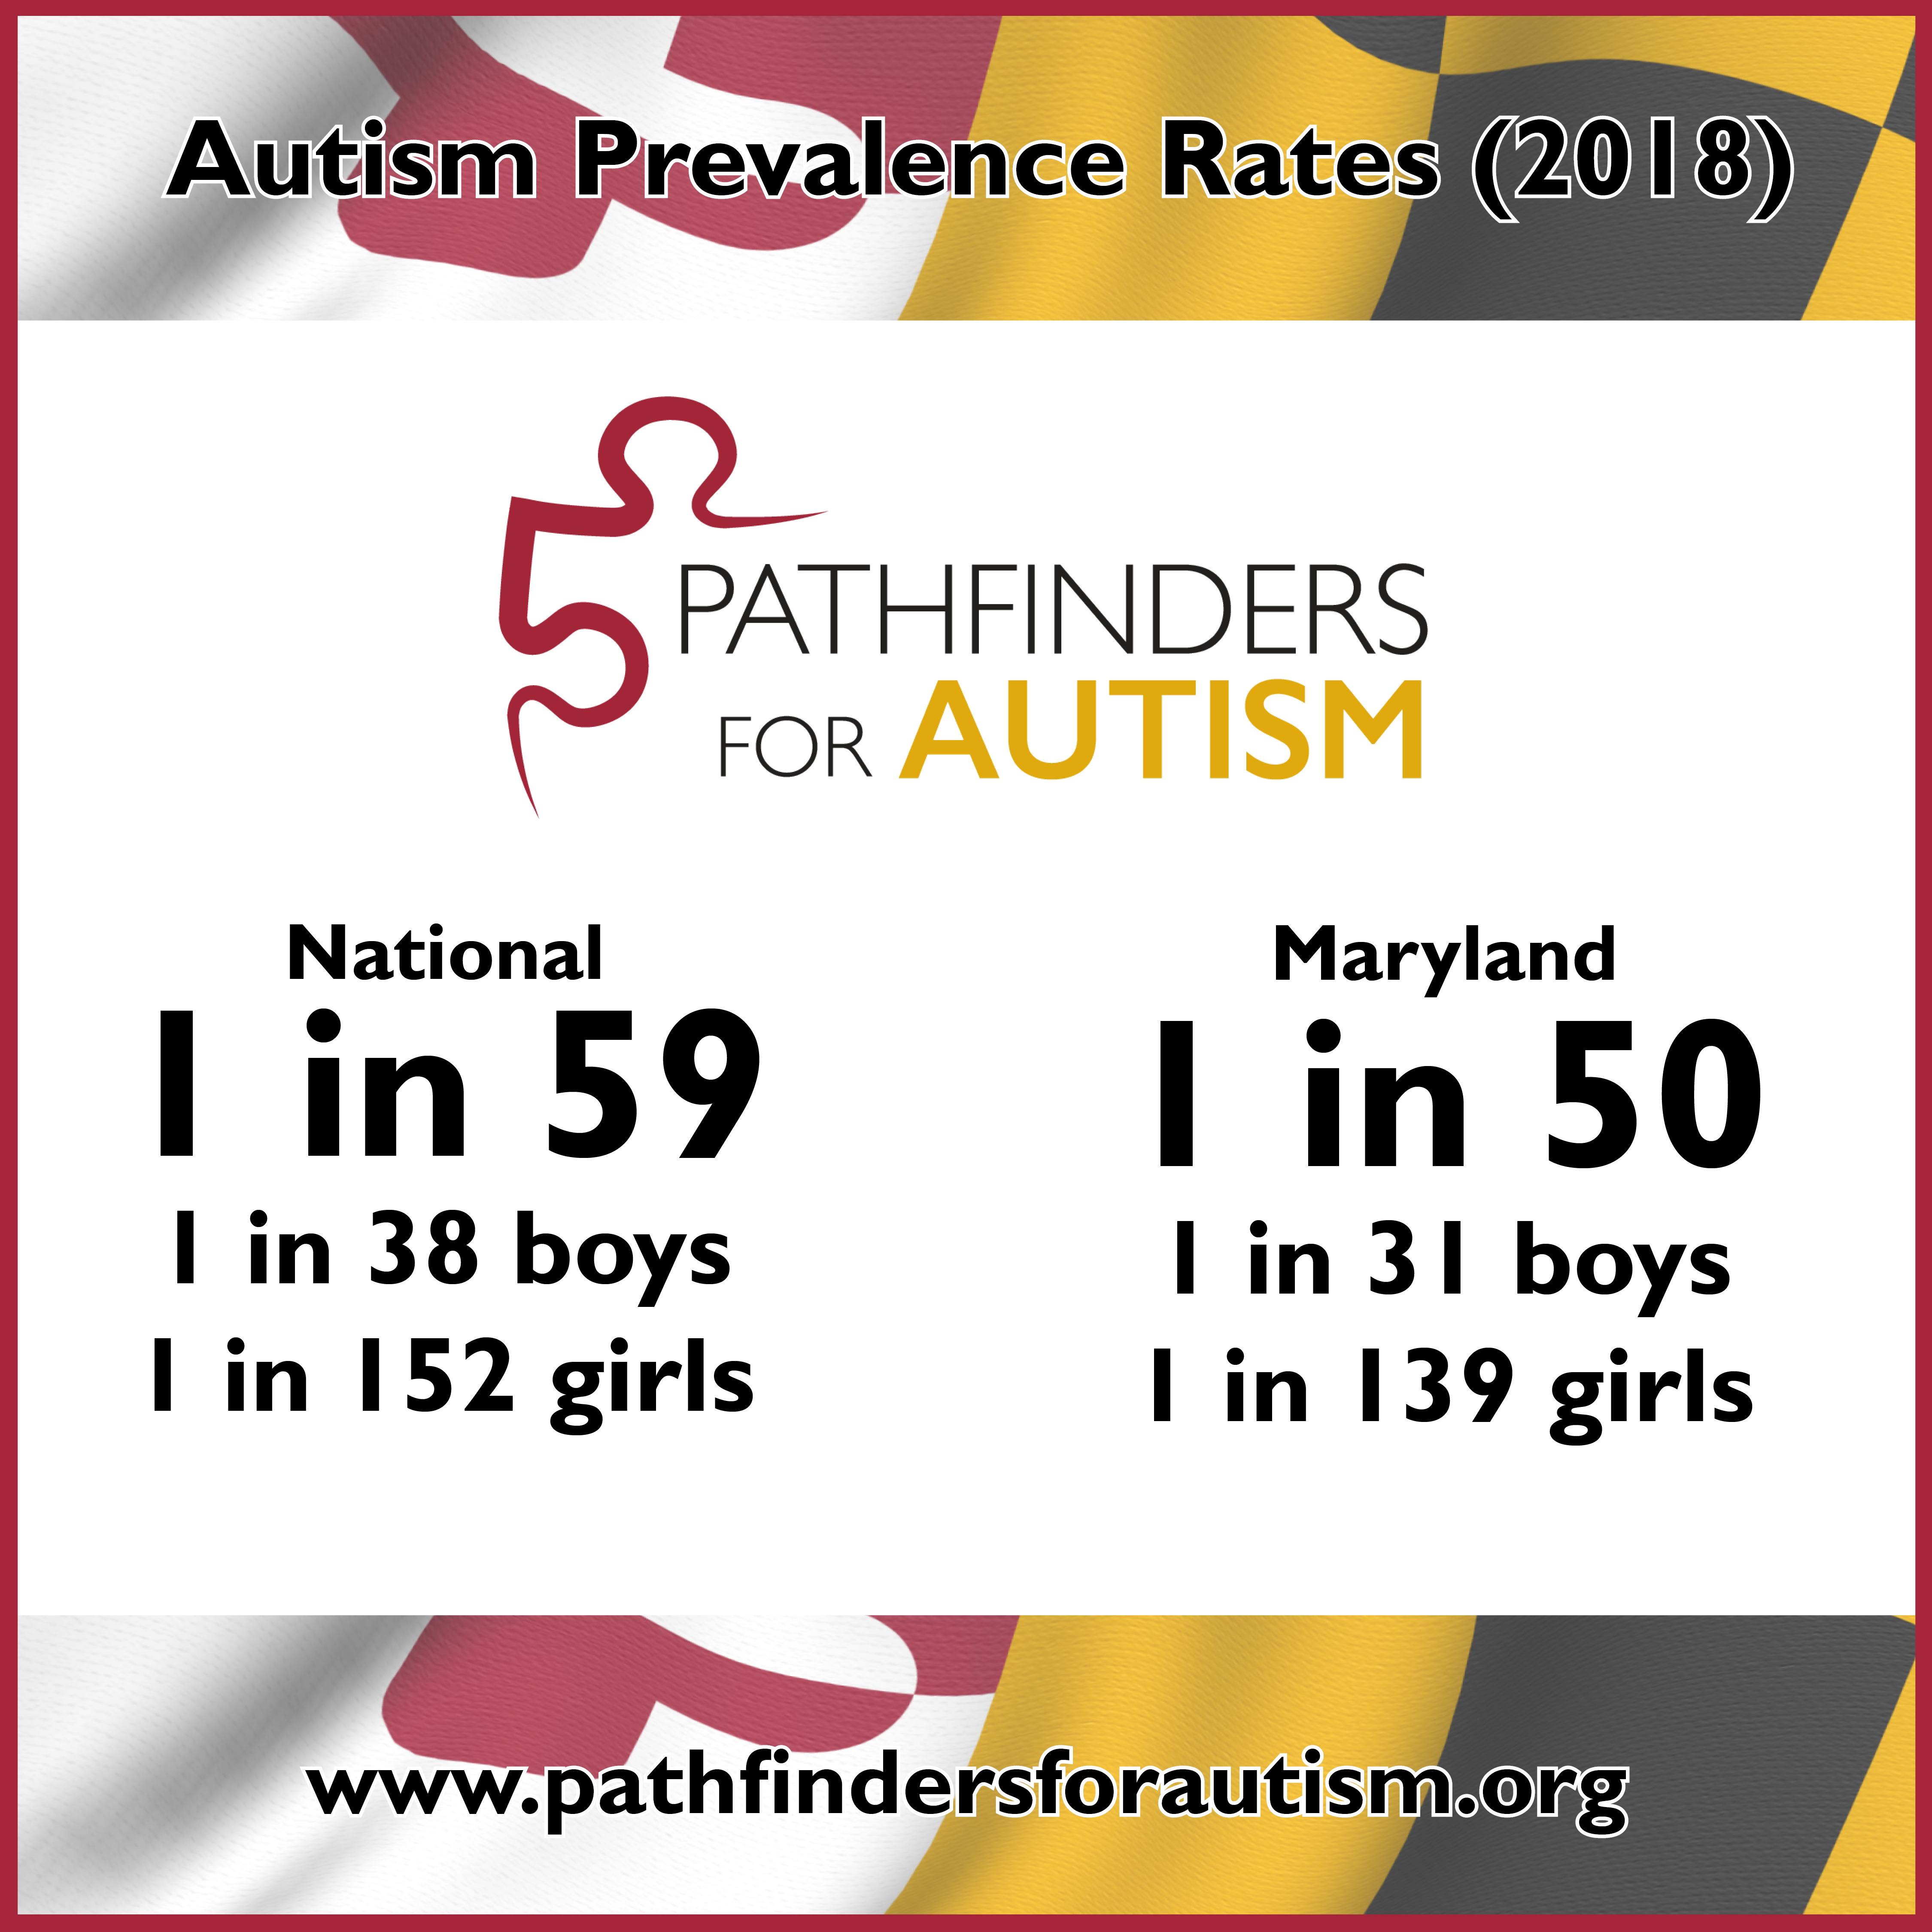 Autism Prevalence Update (2018)